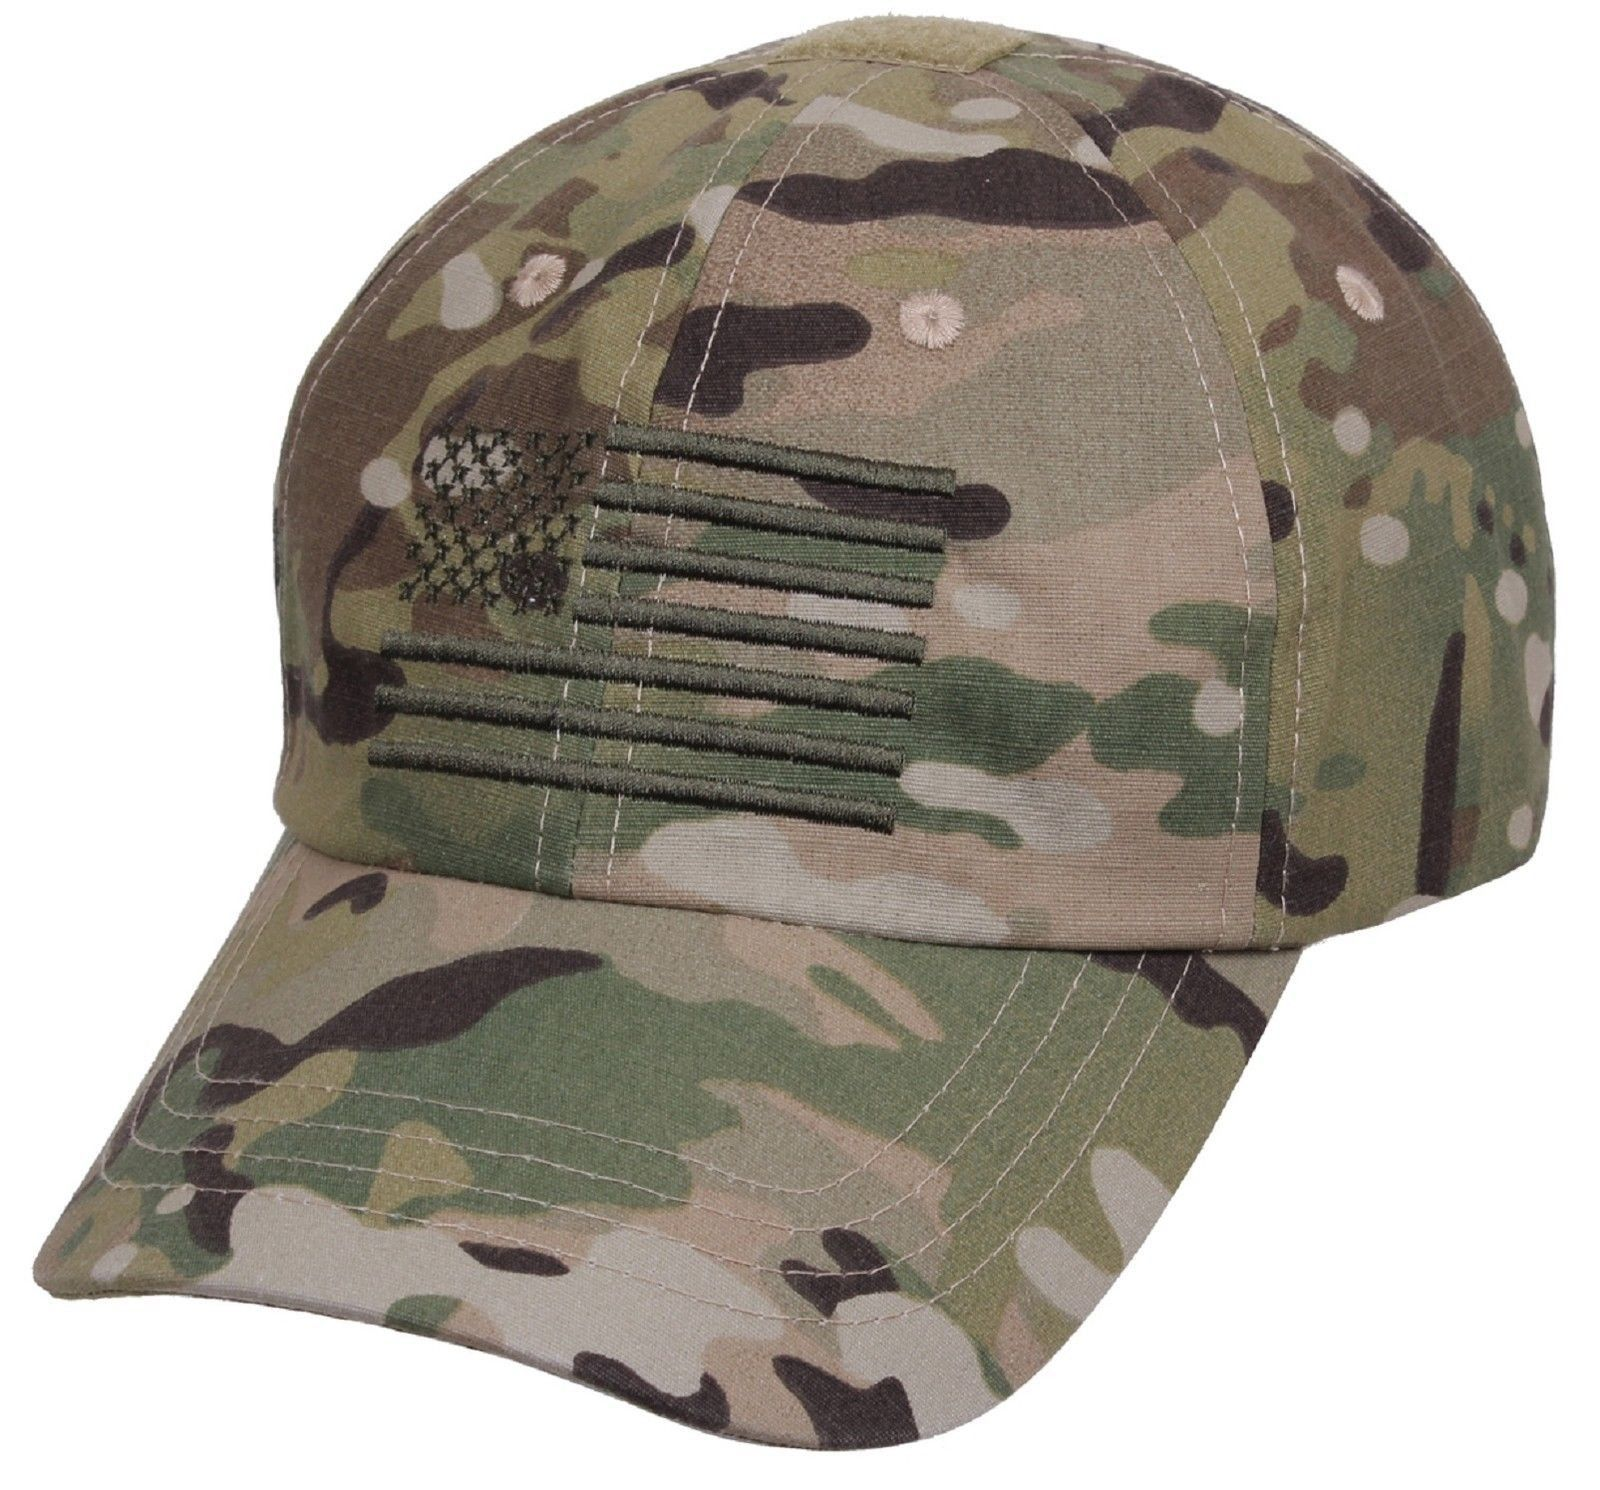 Made From 65 % Poly   35 % Cotton Rip-Stop MultiCam USA Made Fabric -  Features Embroidered USA Flag That Matches MultiCam Fabric - Has Four  Reinforced Air ... 5de00506f8eb